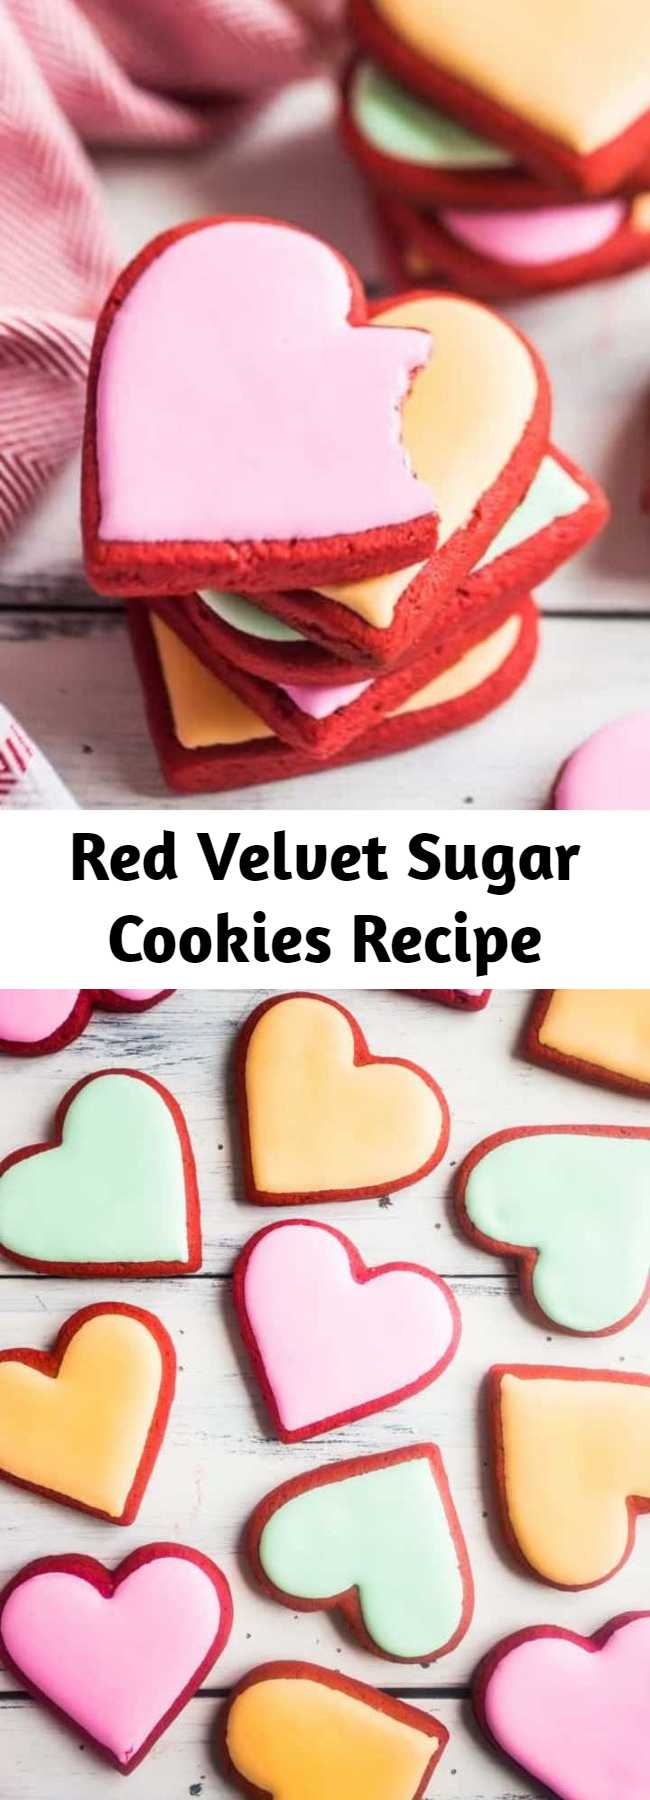 Red Velvet Sugar Cookies Recipe - These red velvet sugar cookies will make your day! Soft & tender, fun & brightly colored, with a hint of cocoa & a slight cream cheese tang. #redvelvet #cookies #recipe #dessert #valentinesday #fromscratch #easy #christmas #withcreamcheese #valentinesday #cutout #homemade #best #chewy #soft #heart #simple #decorated #moist #creamcheese #nochill #sugar